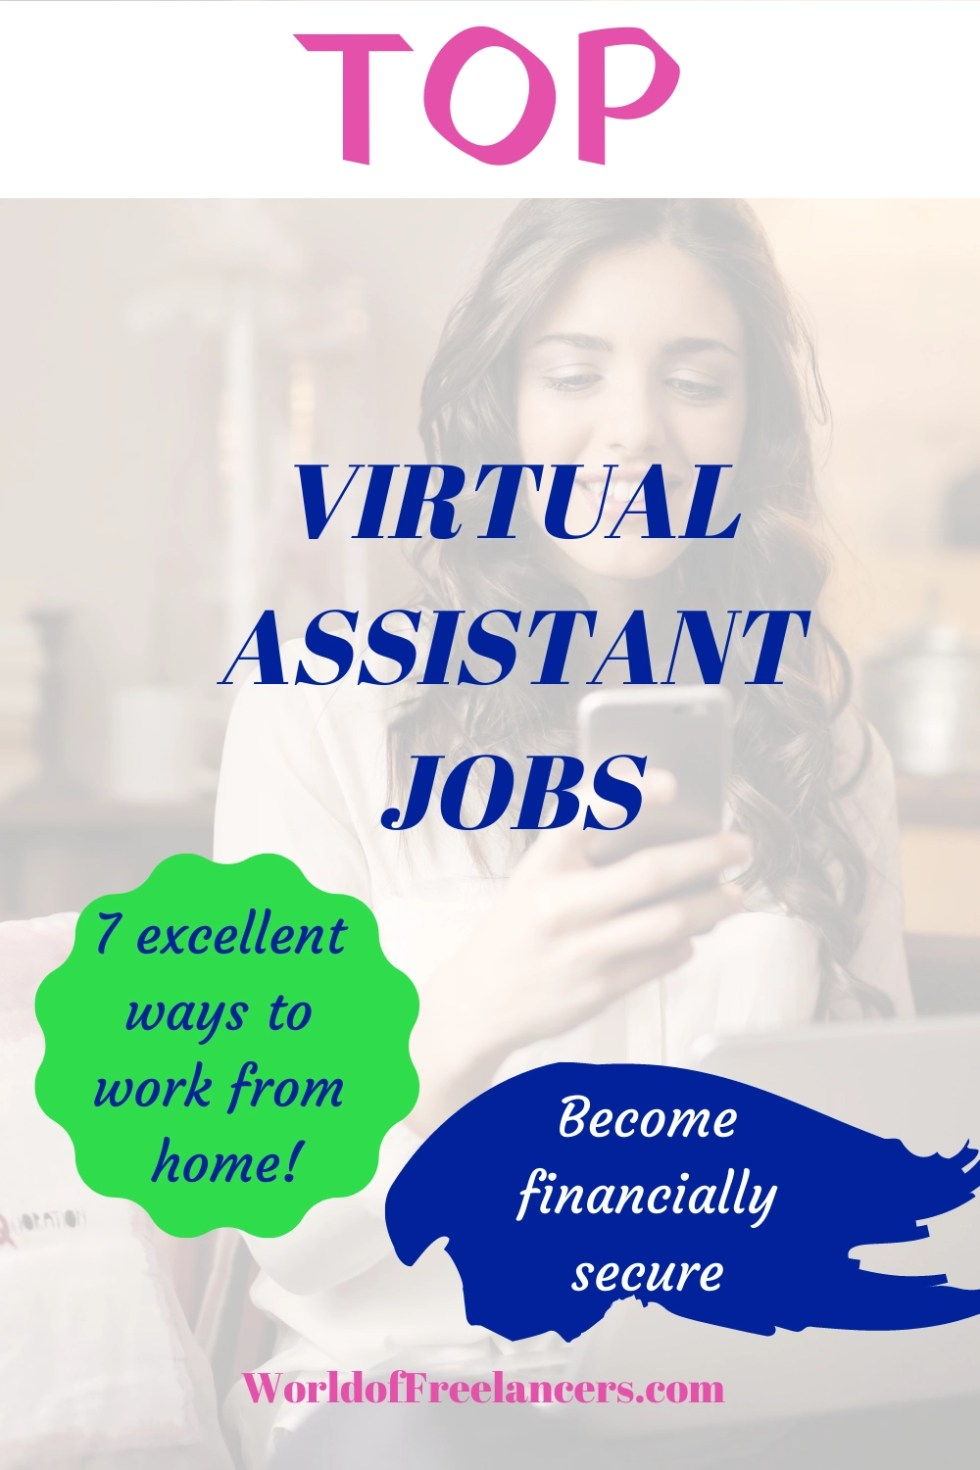 Top virtual assistant jobs from home